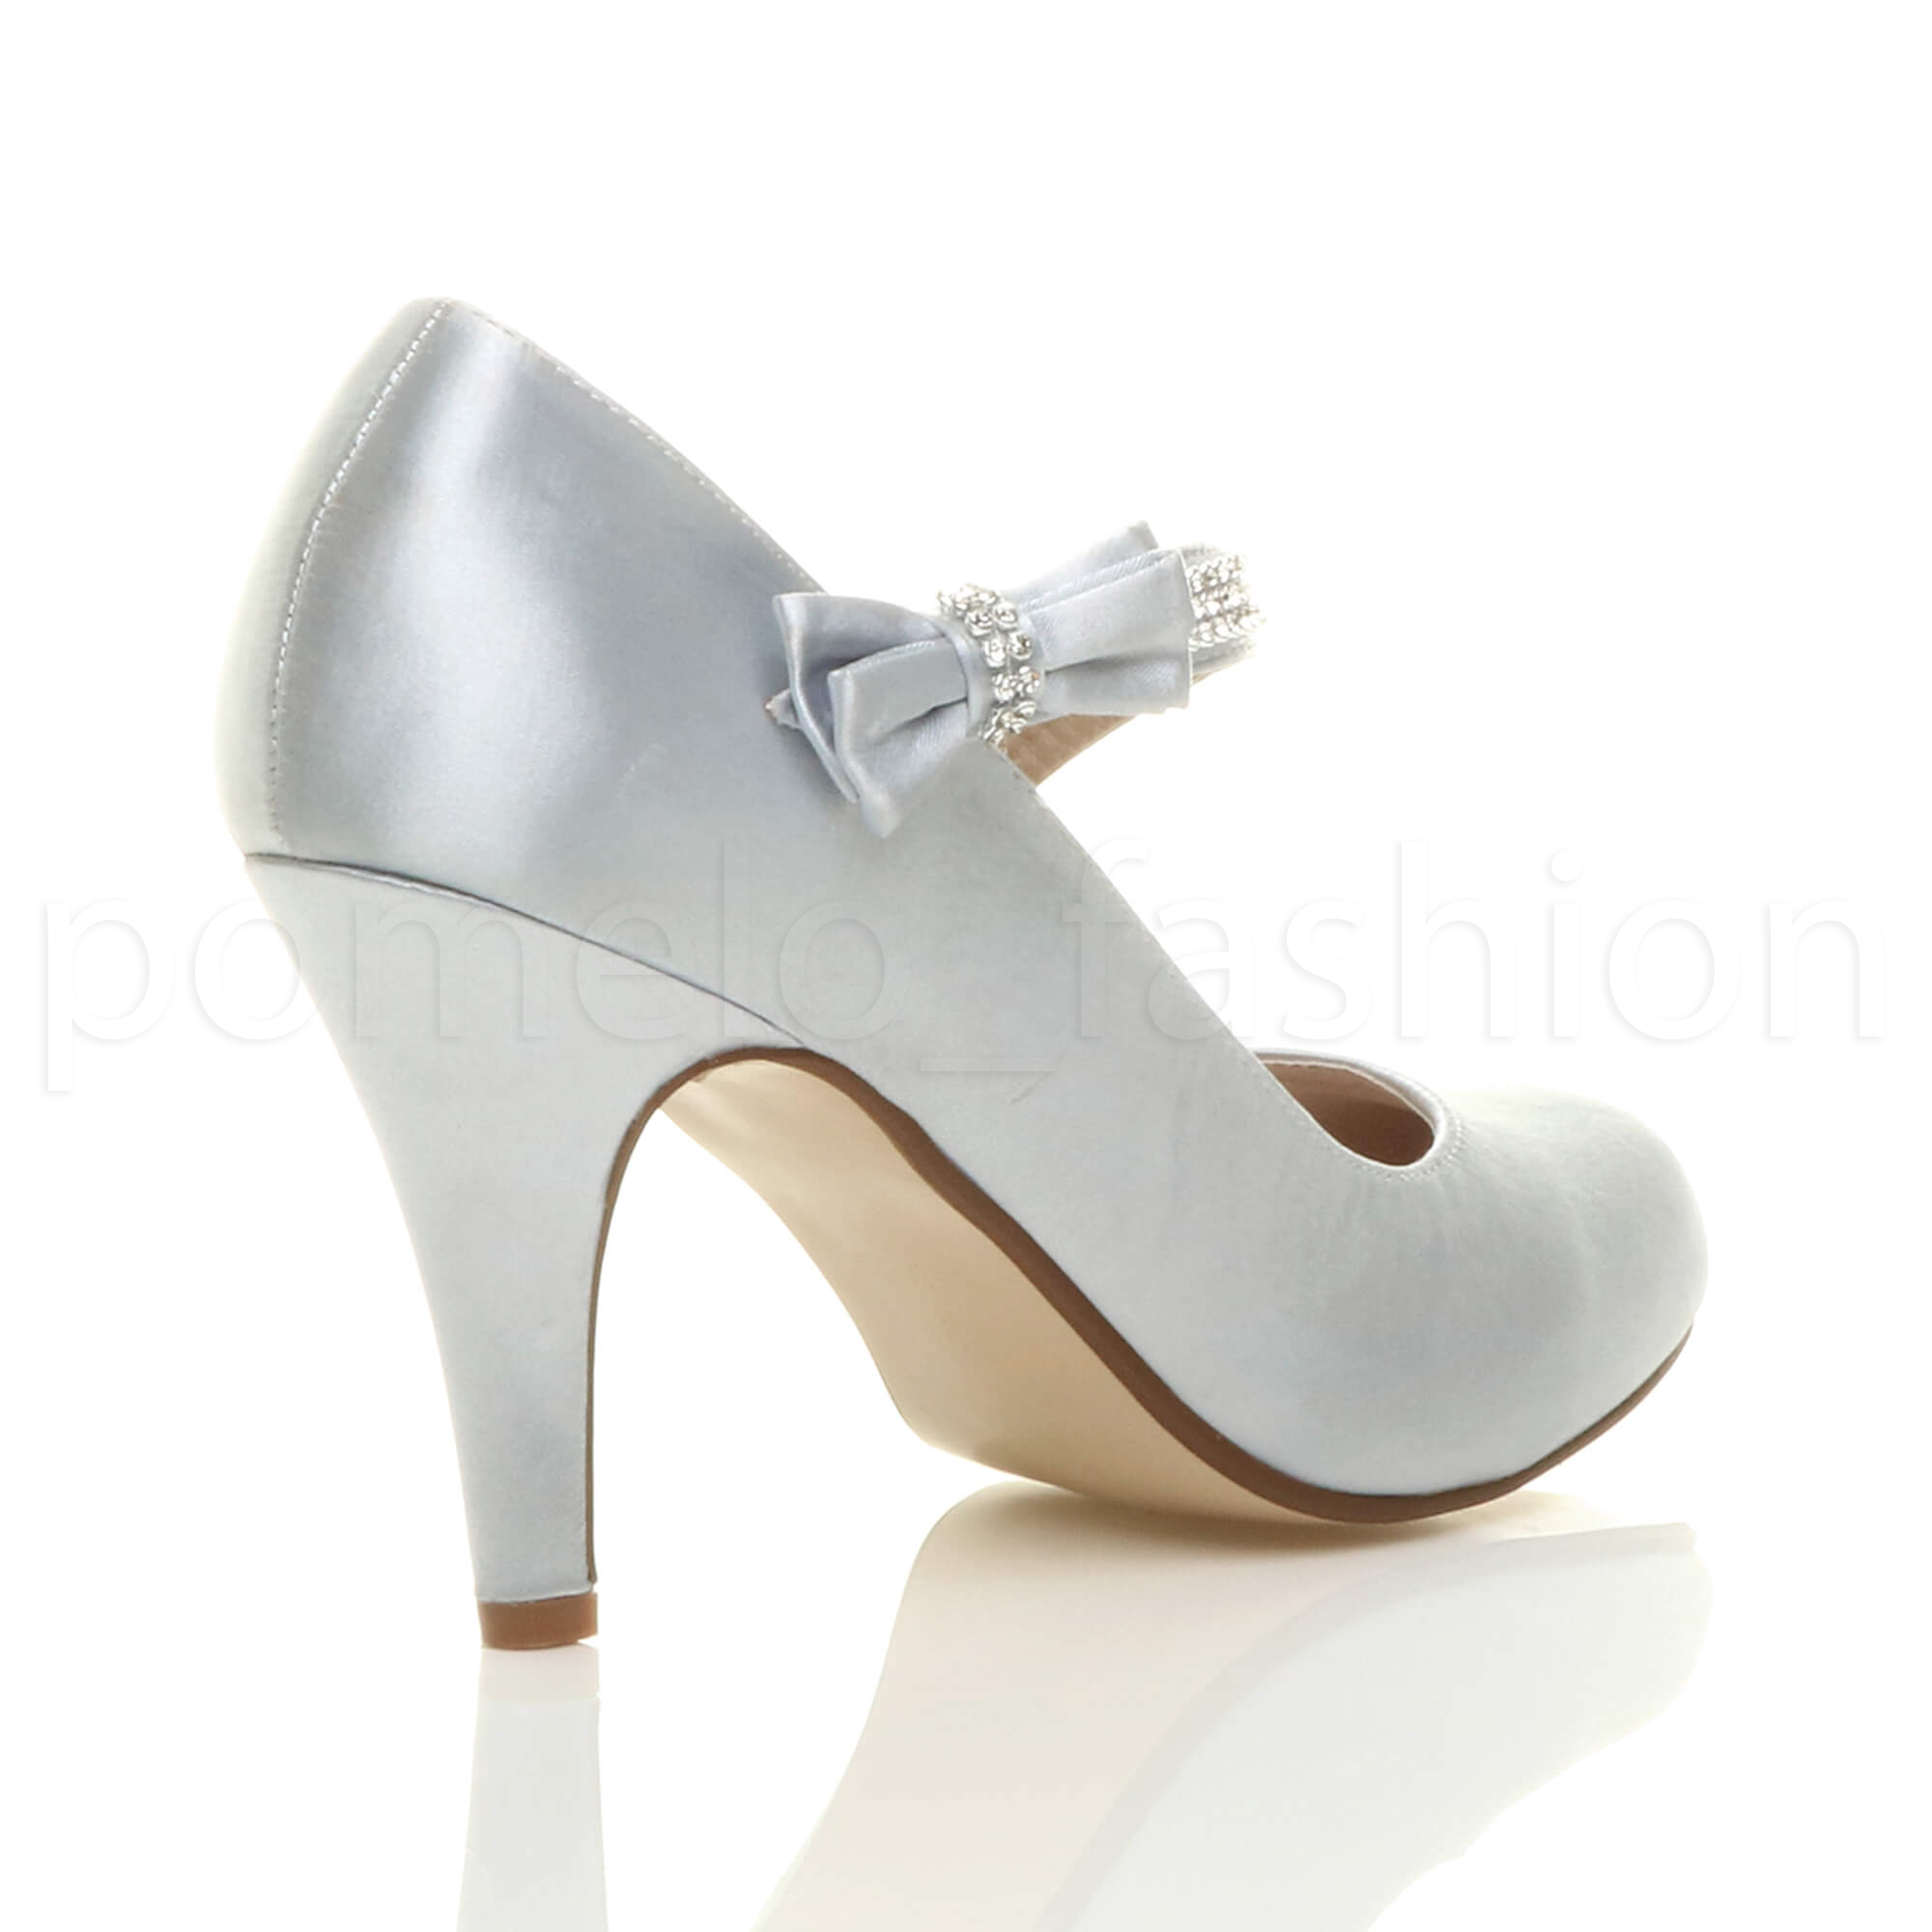 Zapatos De Mujer Para Bailes De Salon Womens Ladies Bridal Wedding Prom Party High Heel Classic